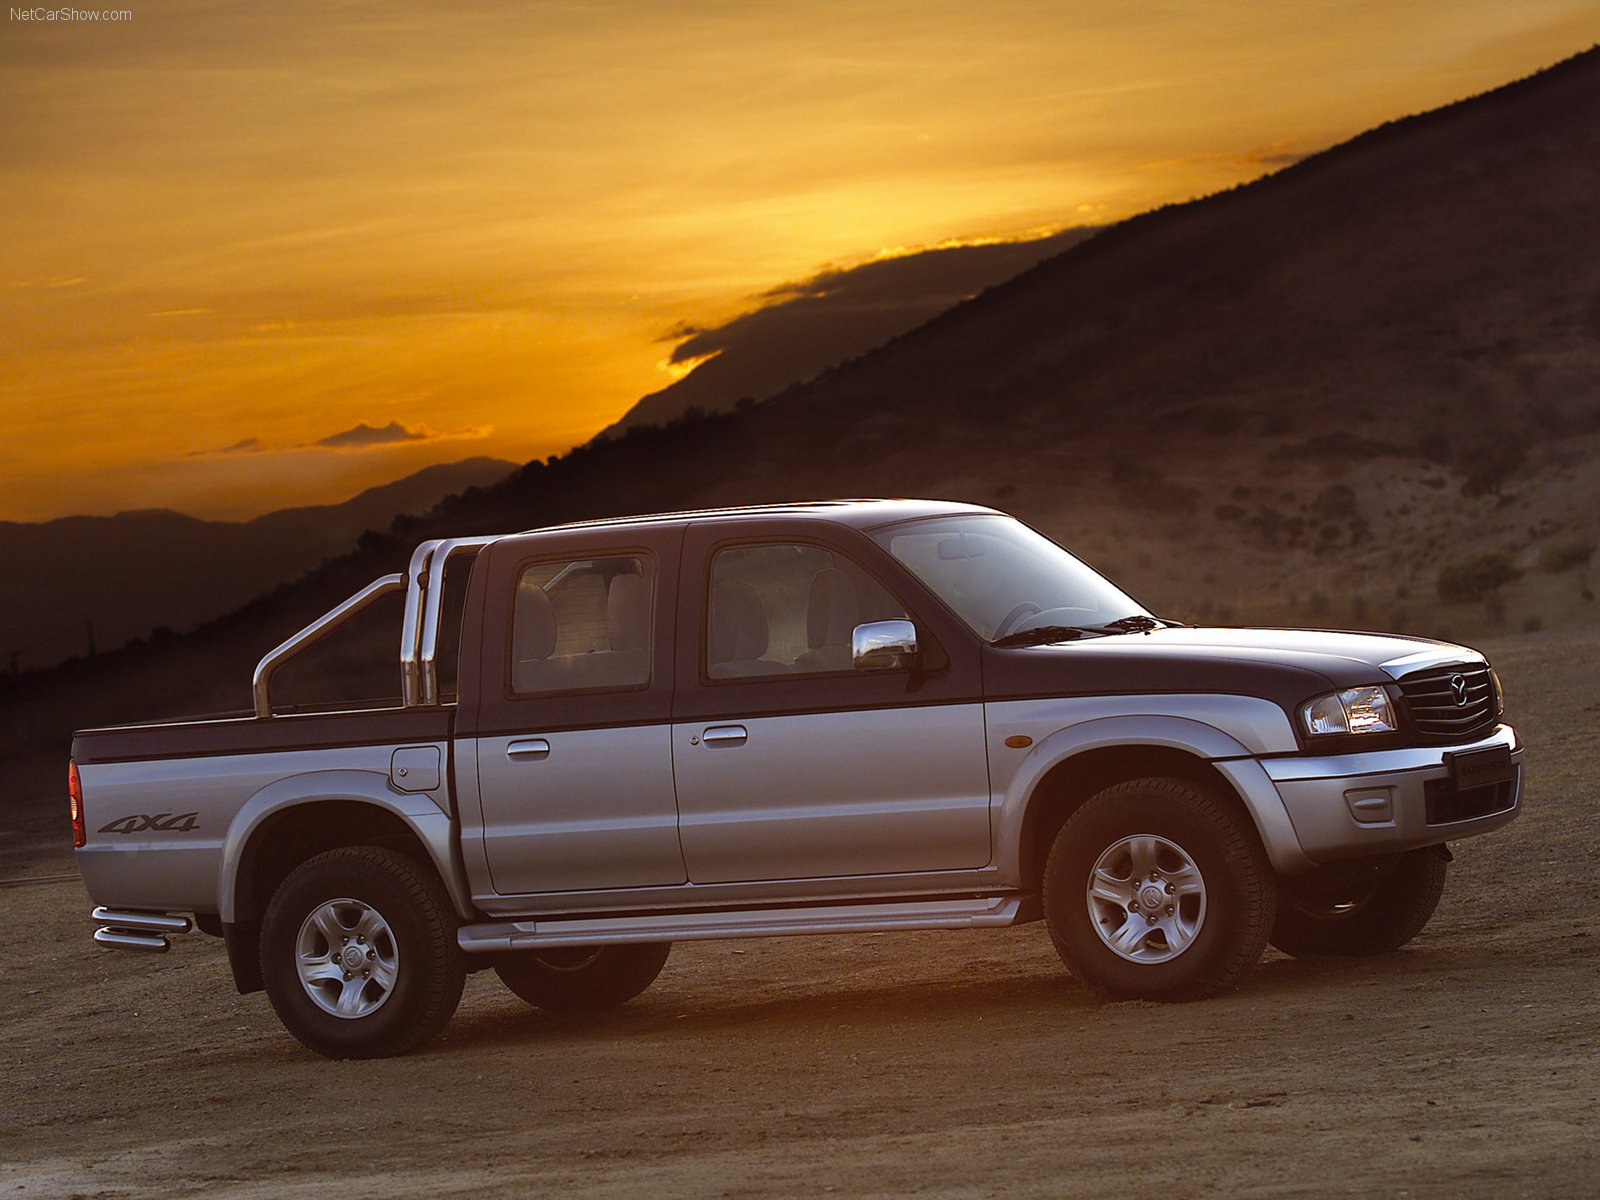 You can vote for this Mazda B2500 photo